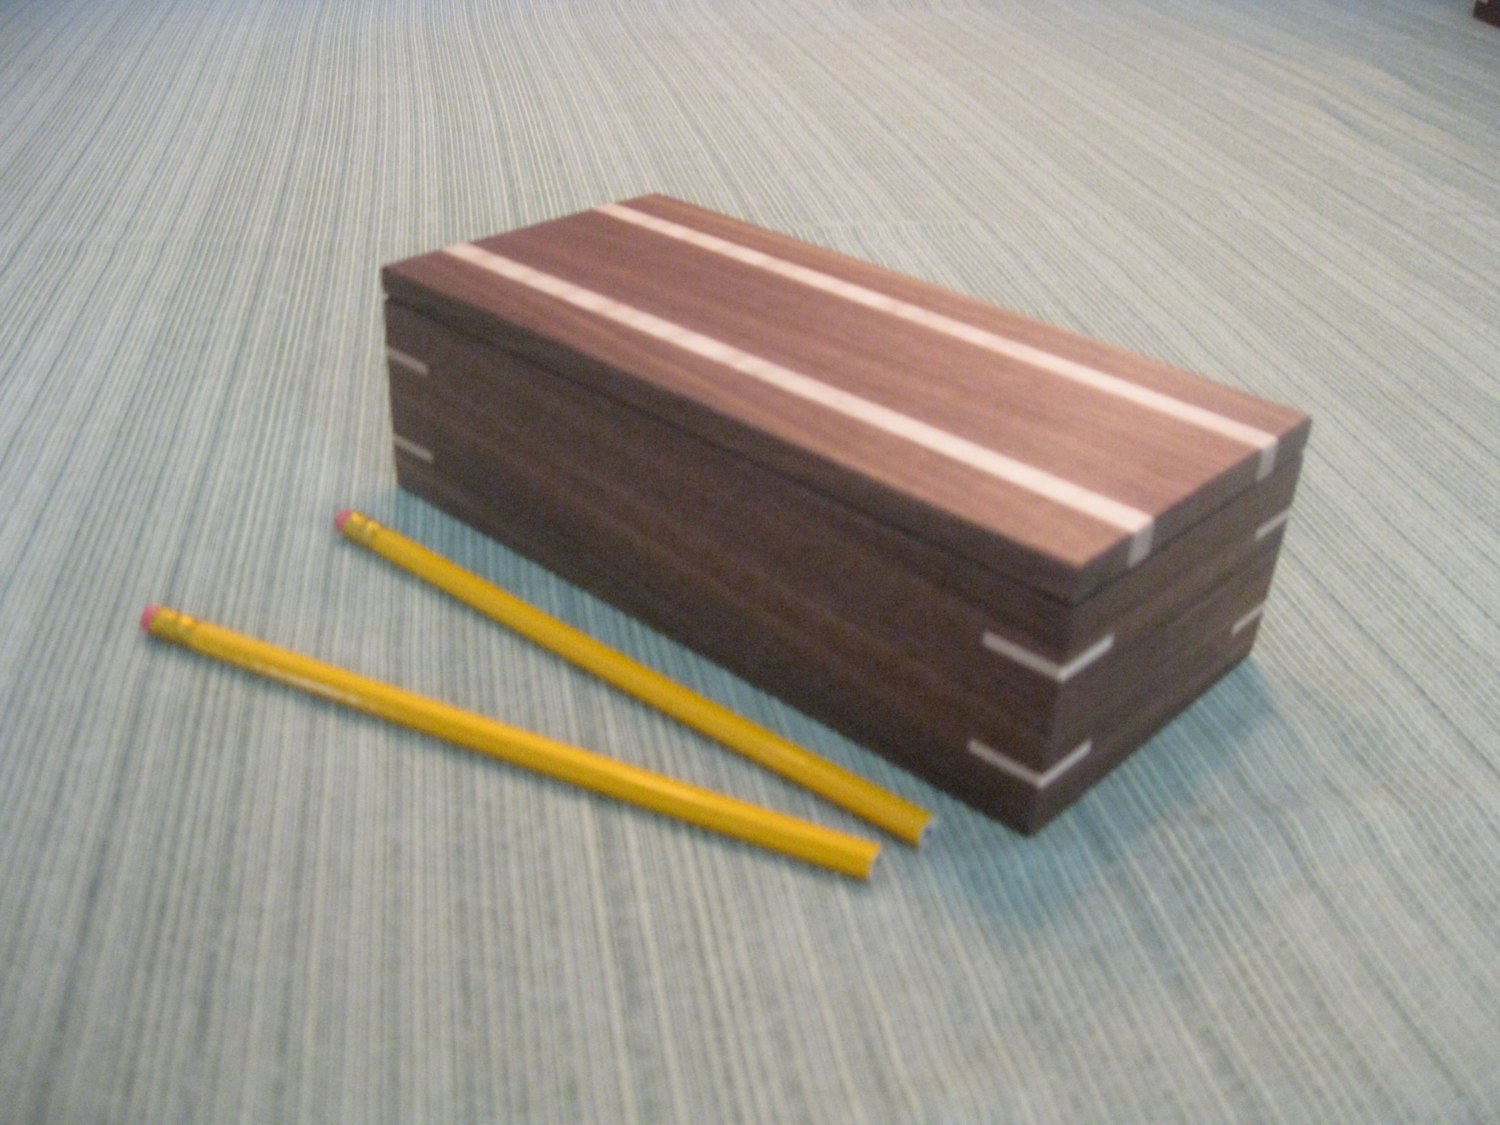 how to make a wooden pencil box for 150 pencils